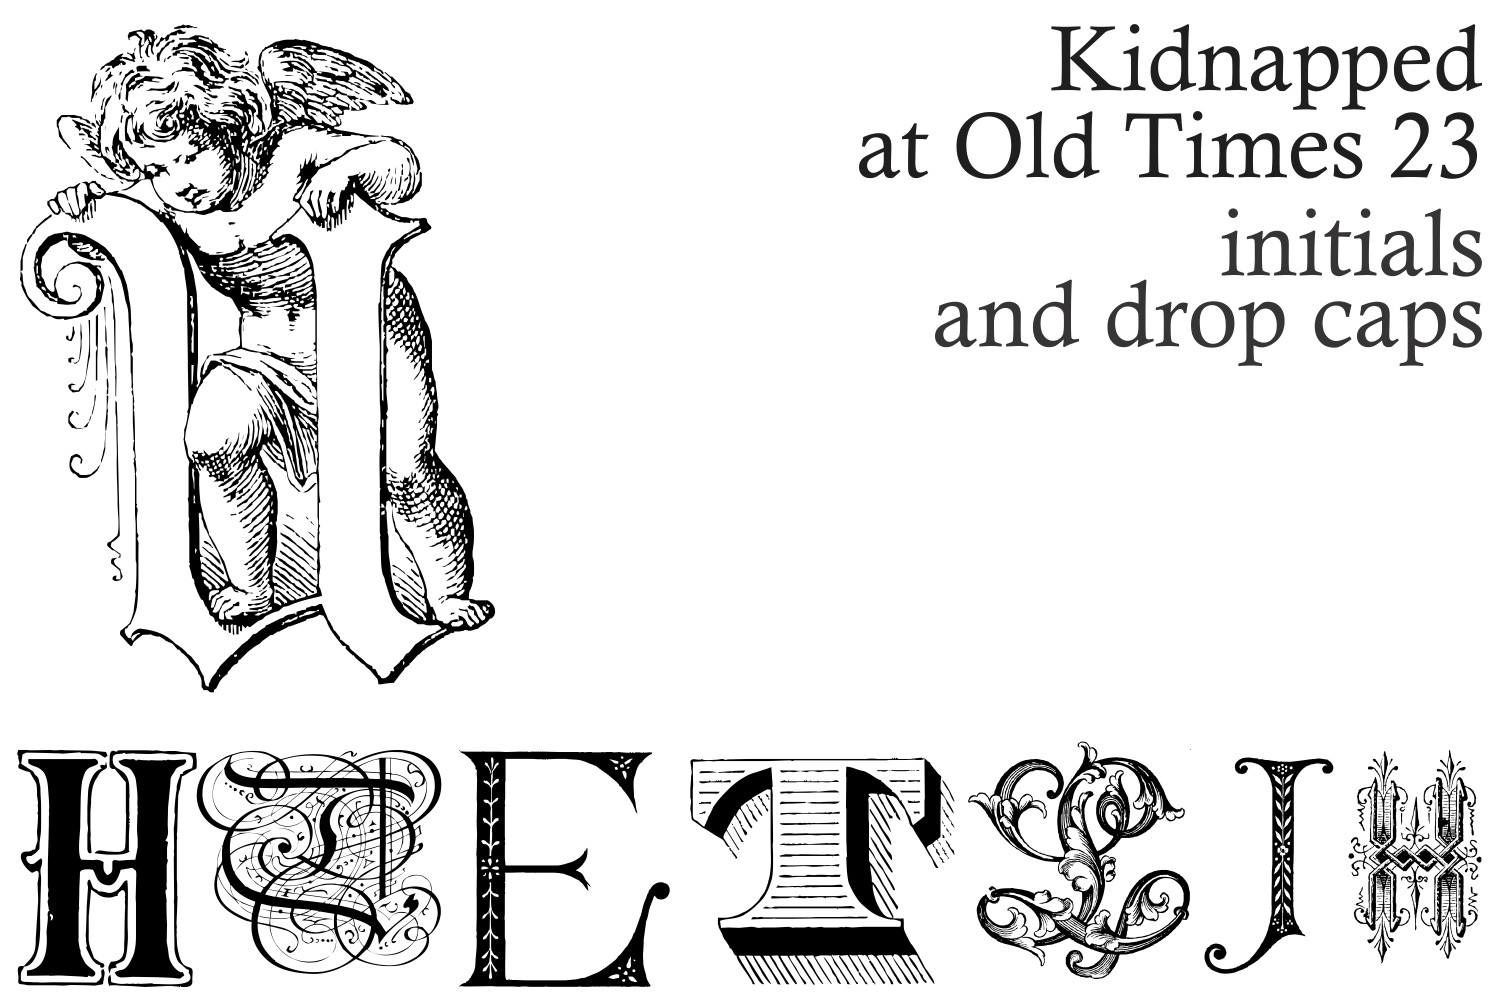 Kidnapped at Old Times 23 example image 1